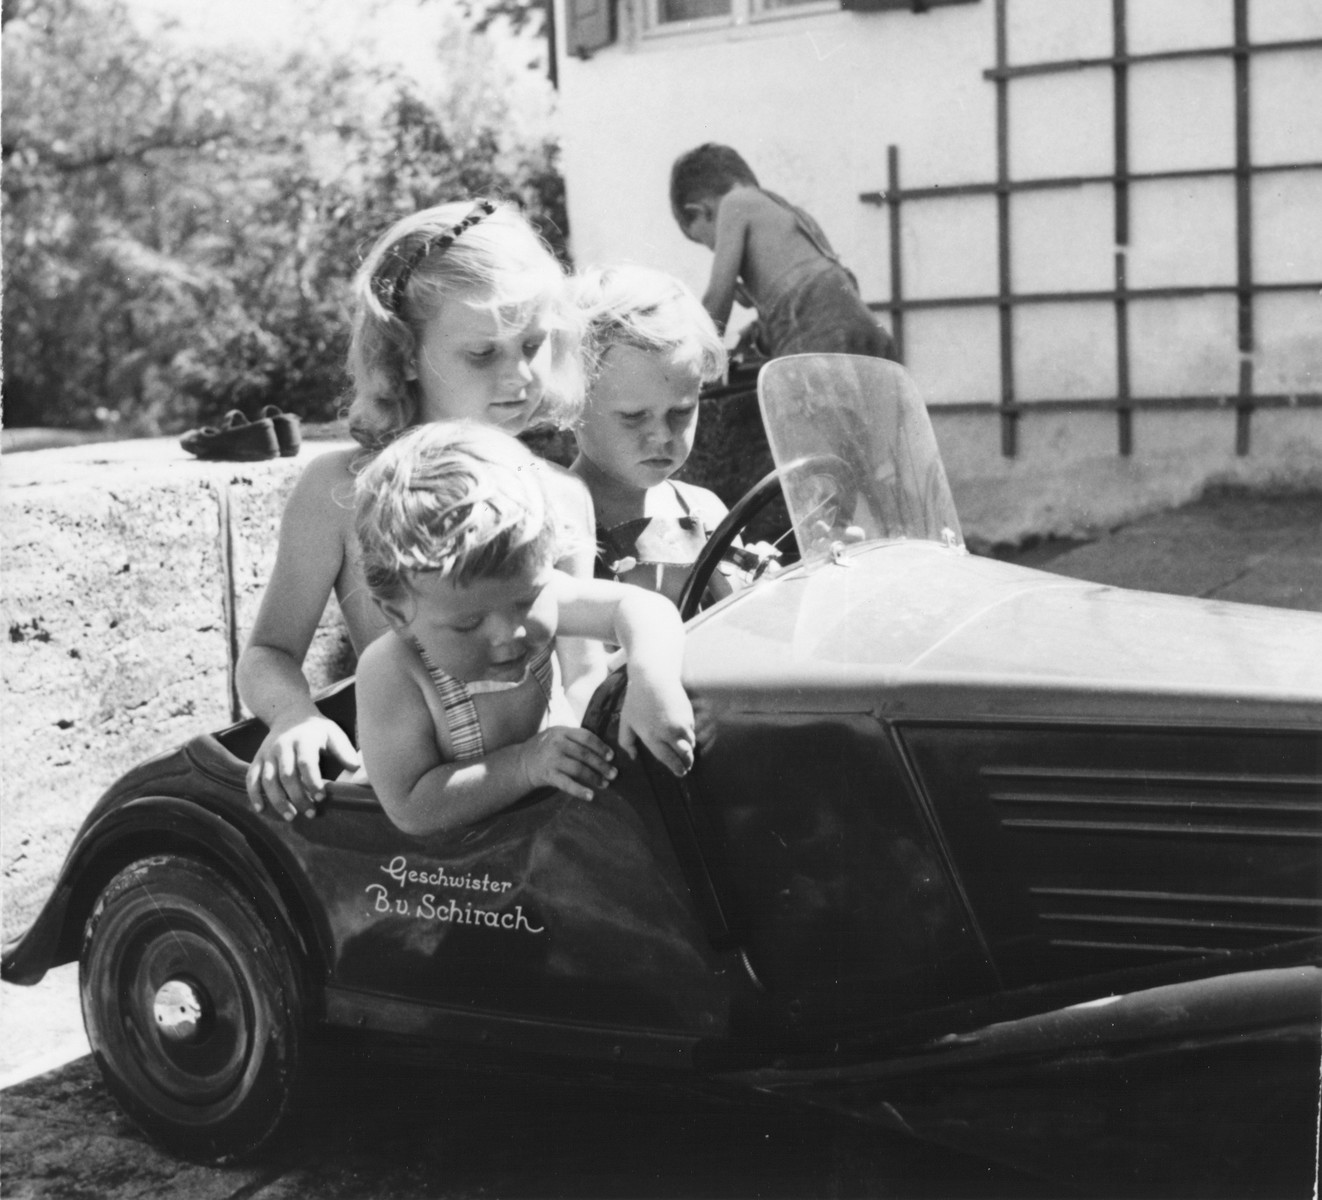 "Three young German children ride in a toy car.   Written on the side of the car is, ""Brothers and sisters Baldur von Schirach.""  Some of these children may be those of Baldur von Schirach.  He had three sons and a daughter."